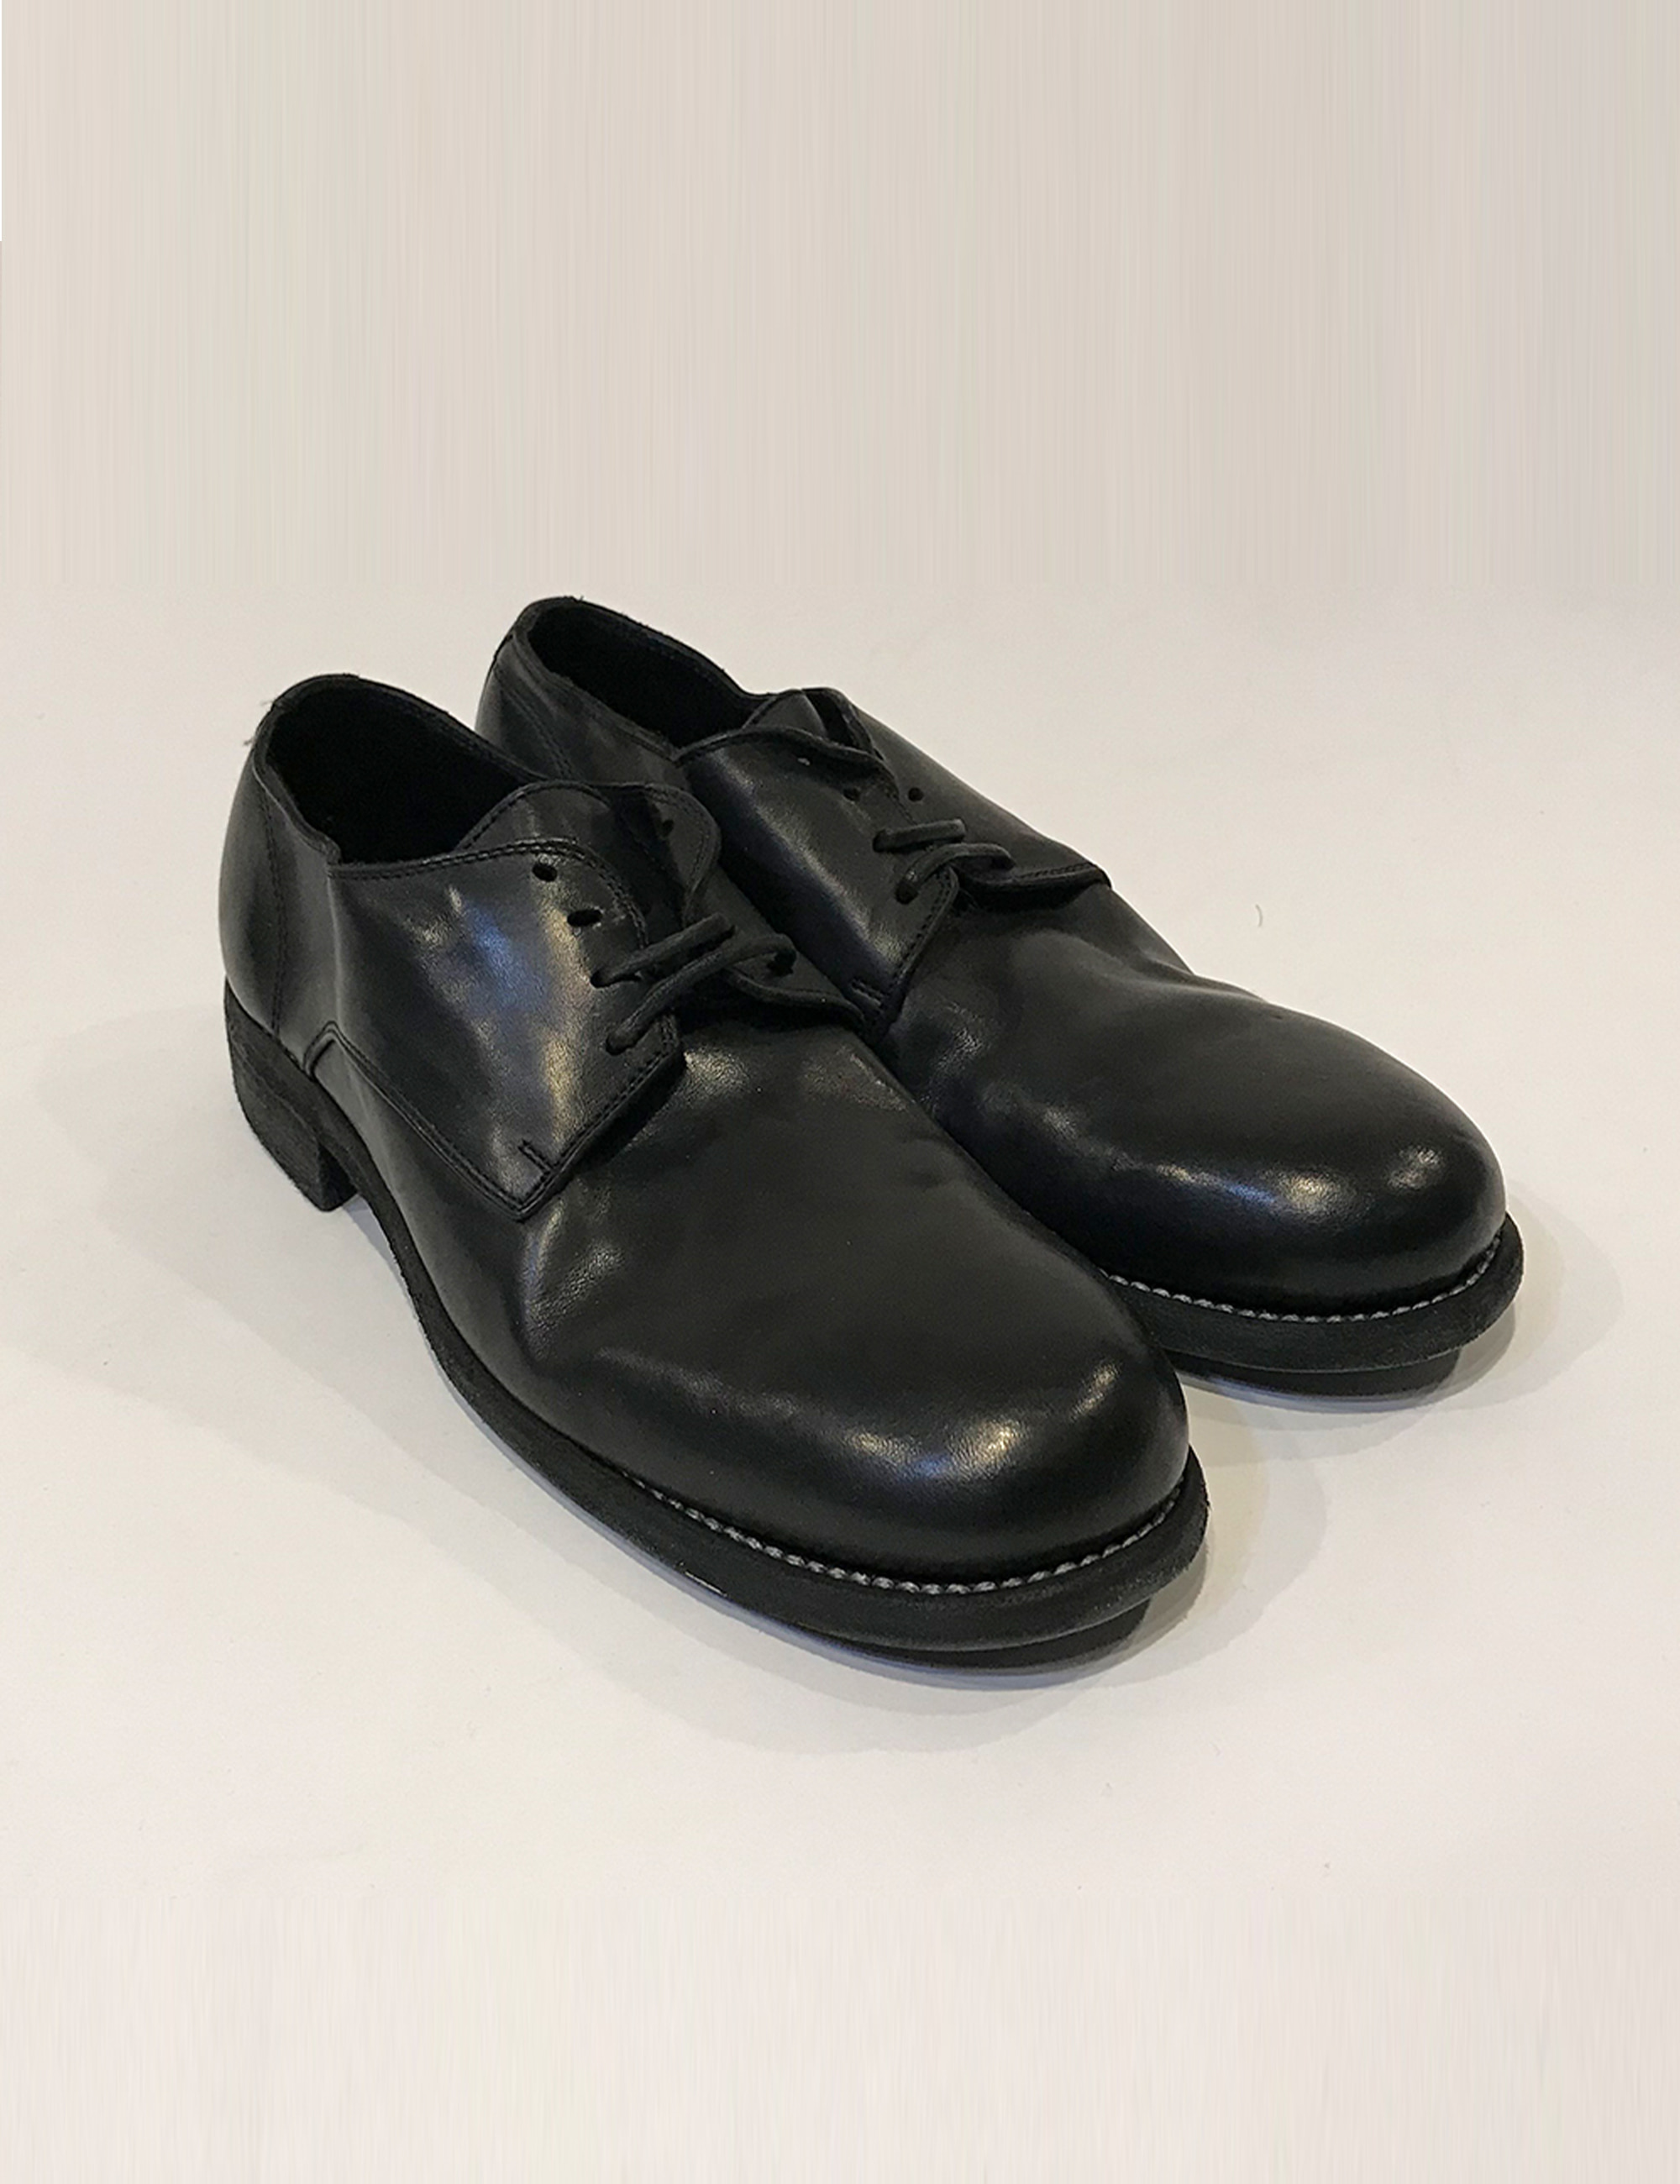 992 CLASSIC DERBY, SOLE LEATHER_BLACK